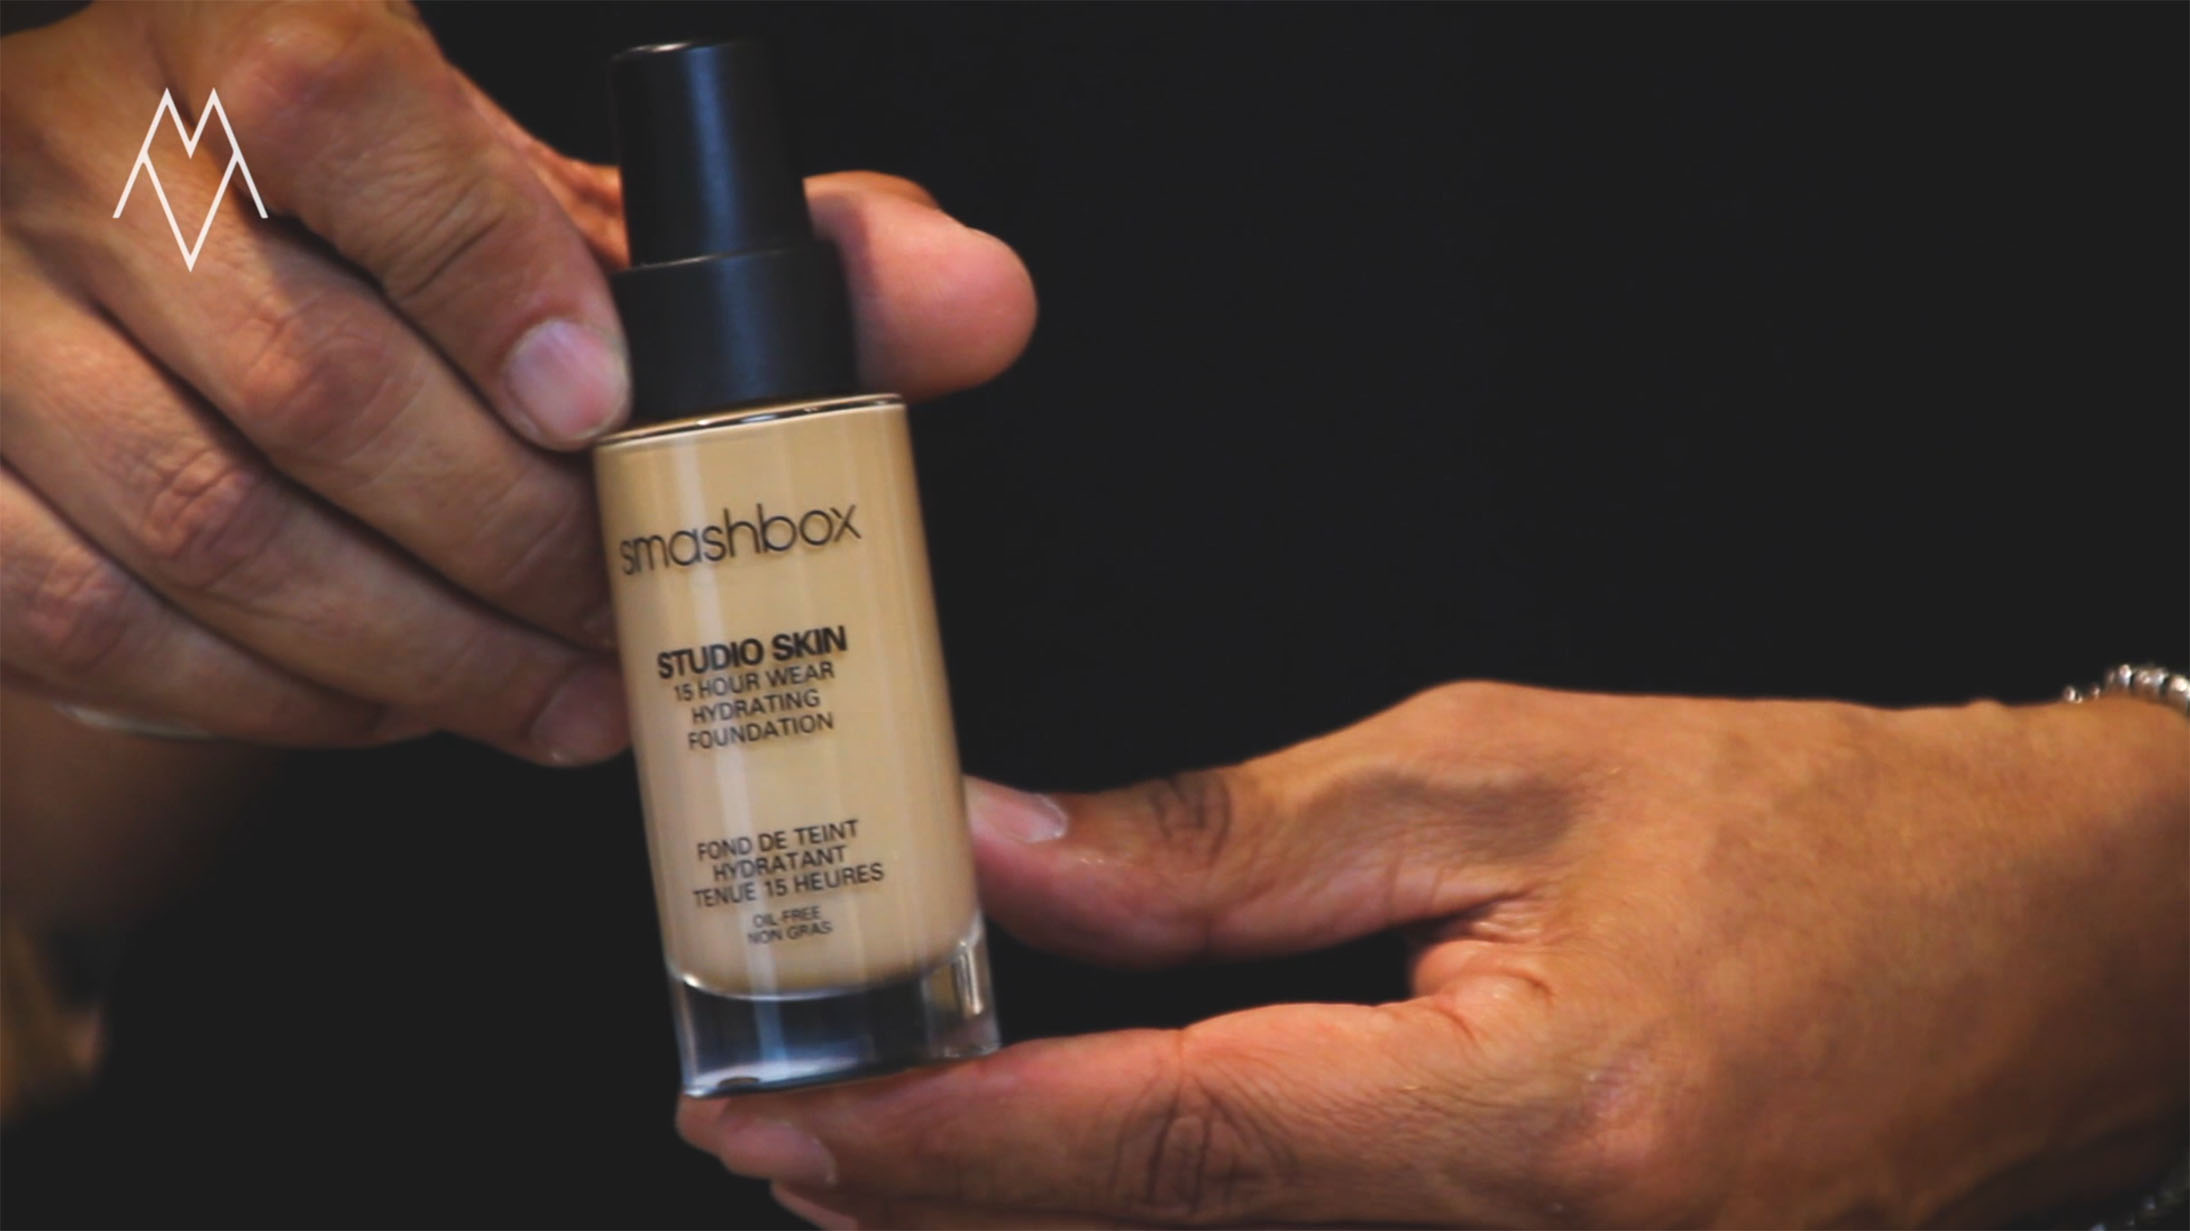 smashbox studio skin foundation liquid 15hour hydrating get